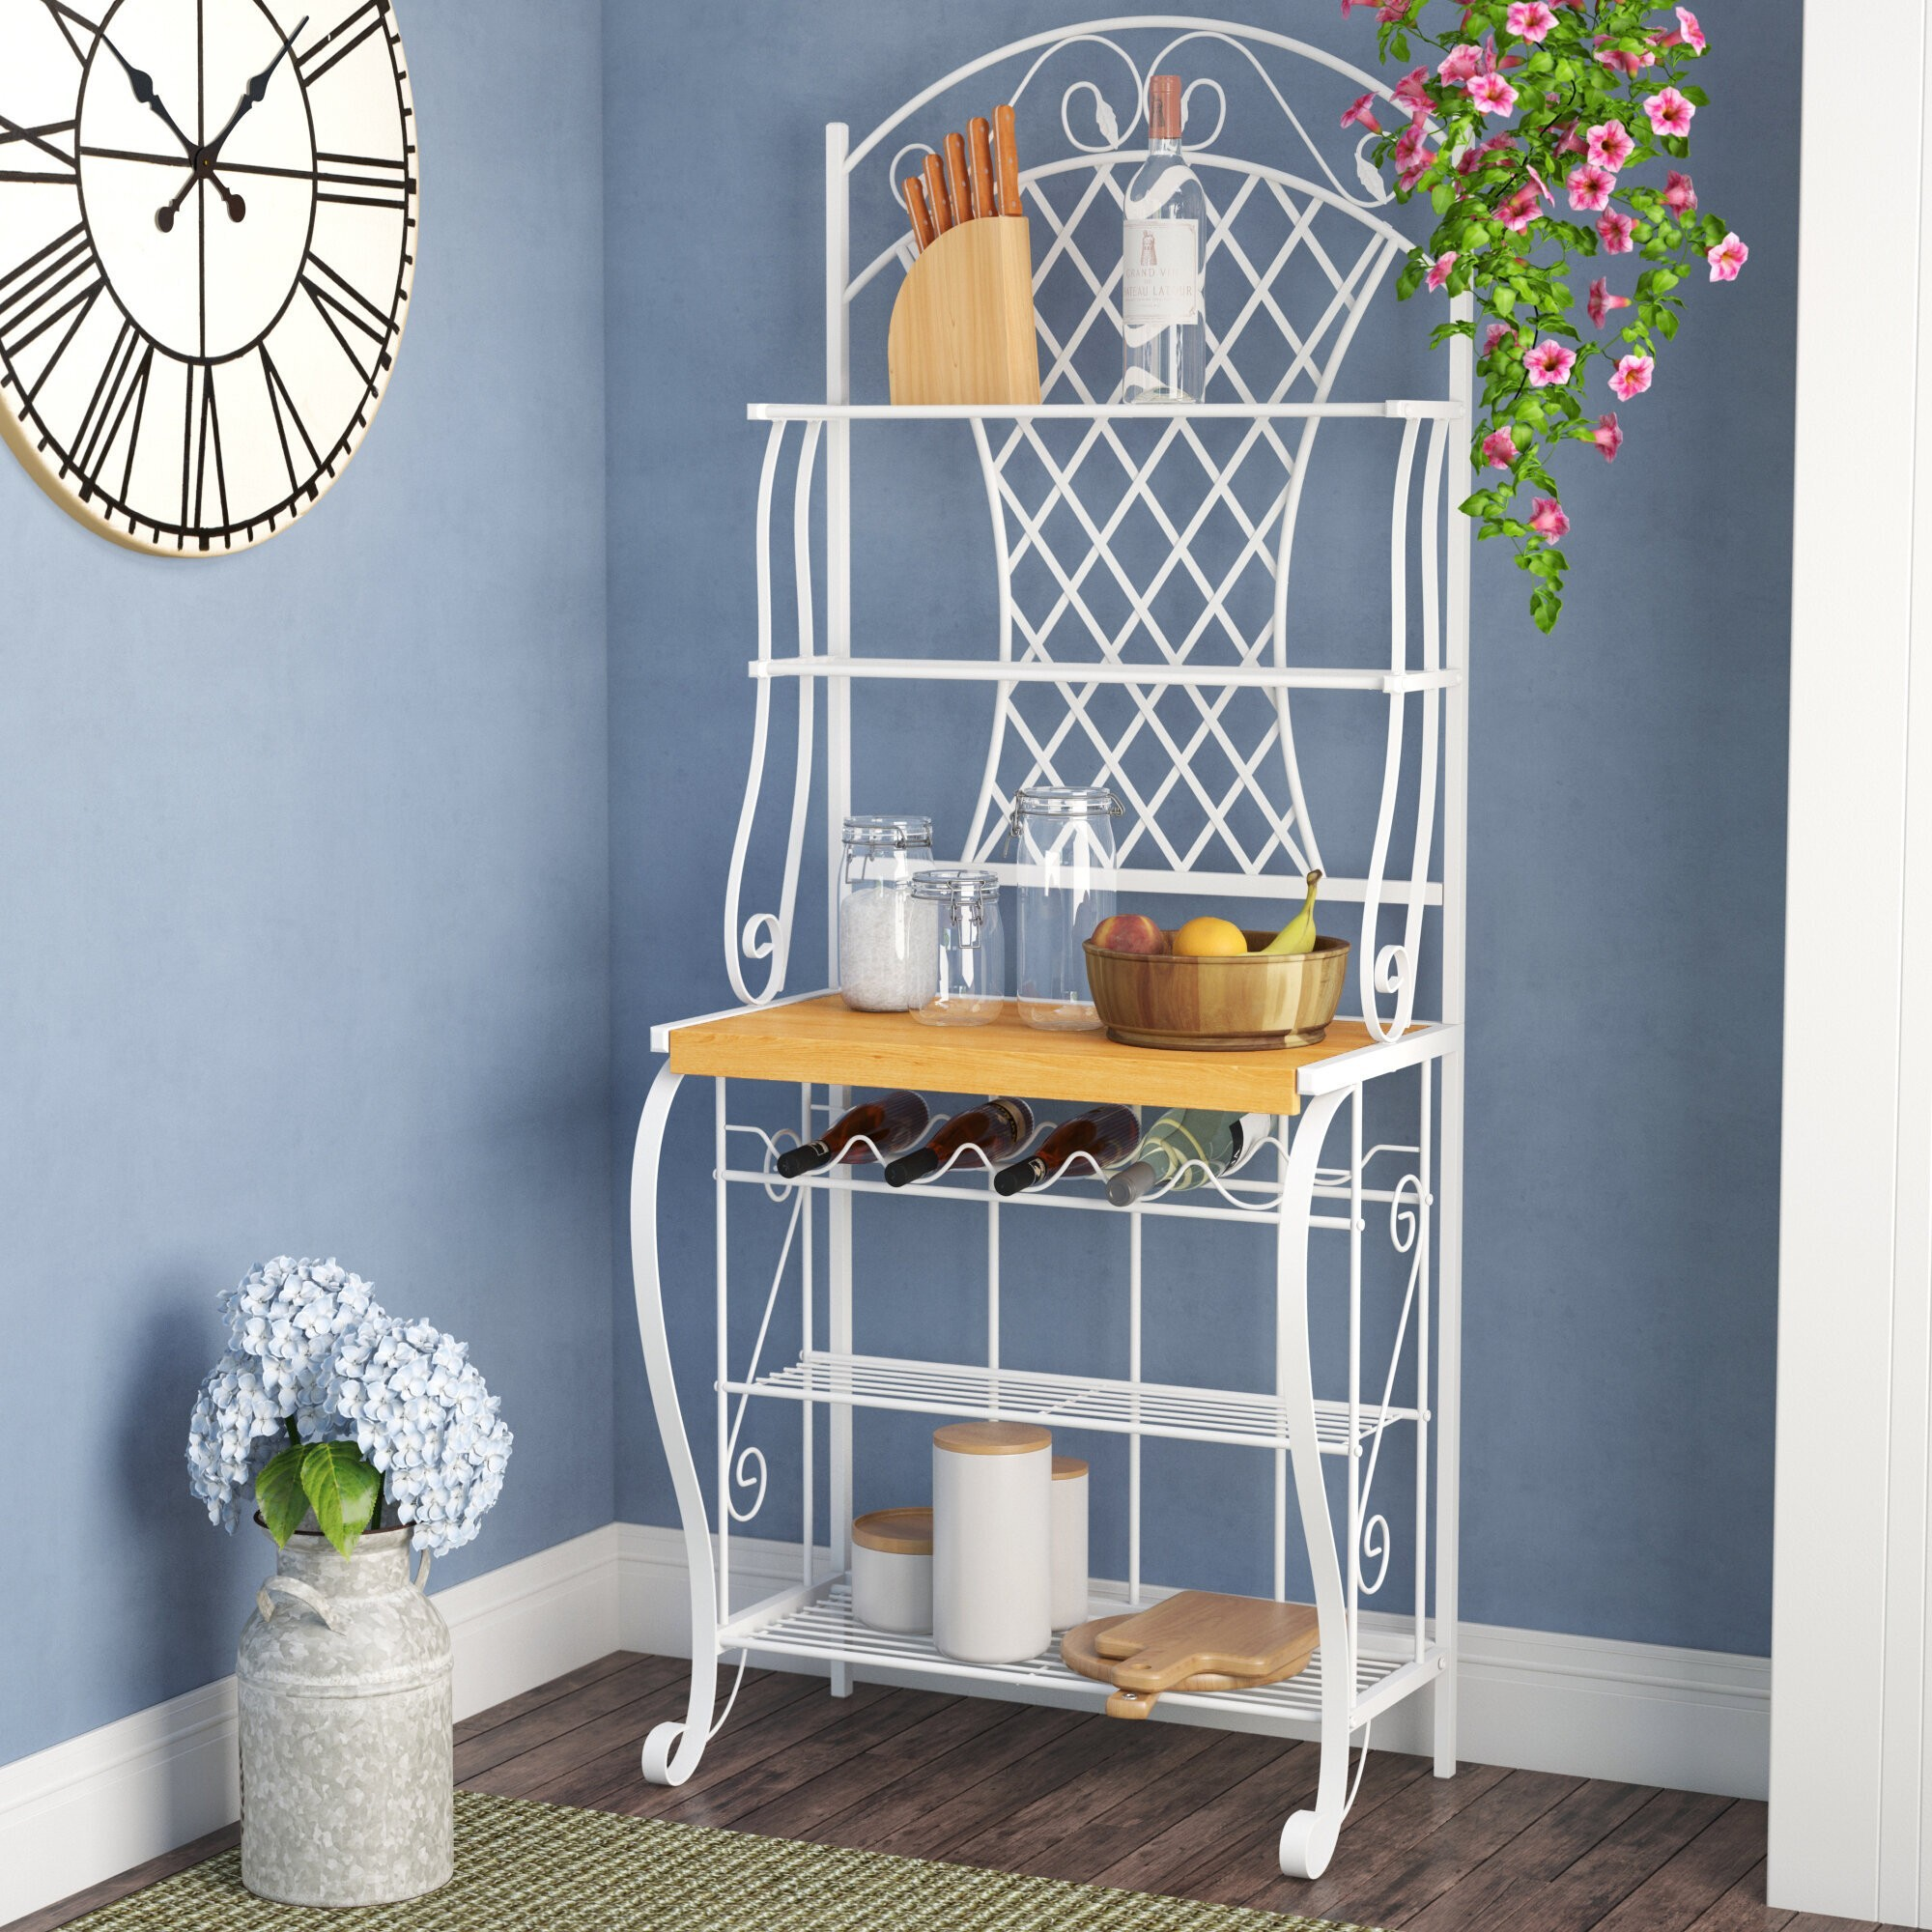 10 Awesome Baker S Racks For Your Home Foter